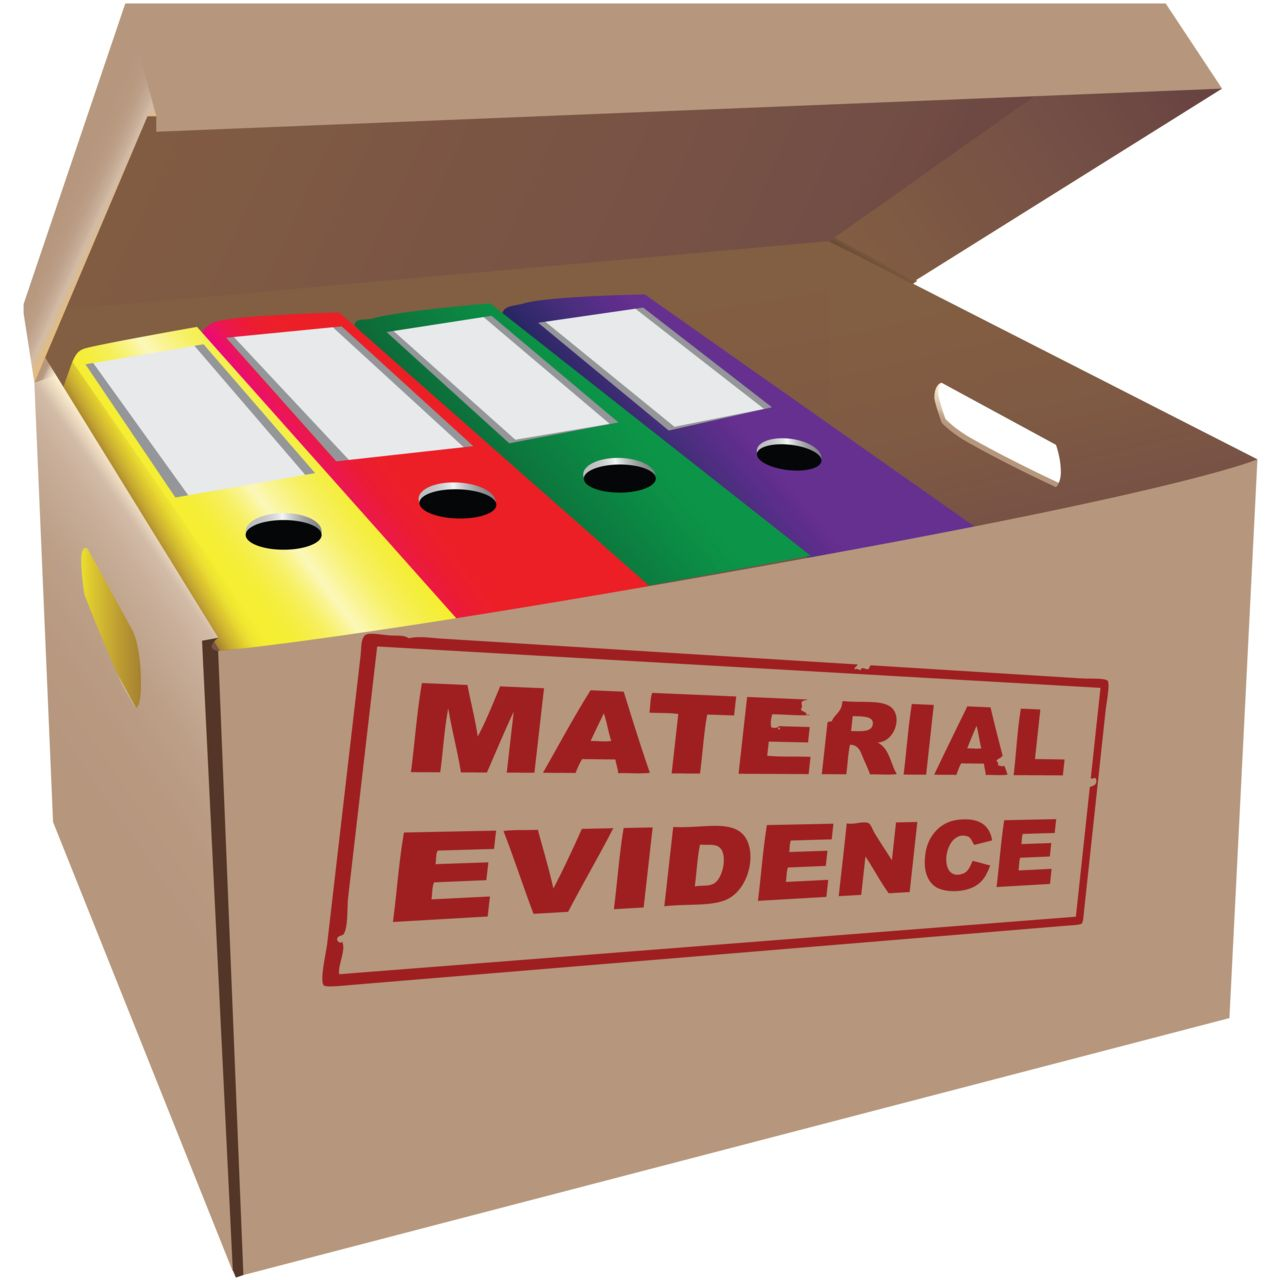 Box of material evidence